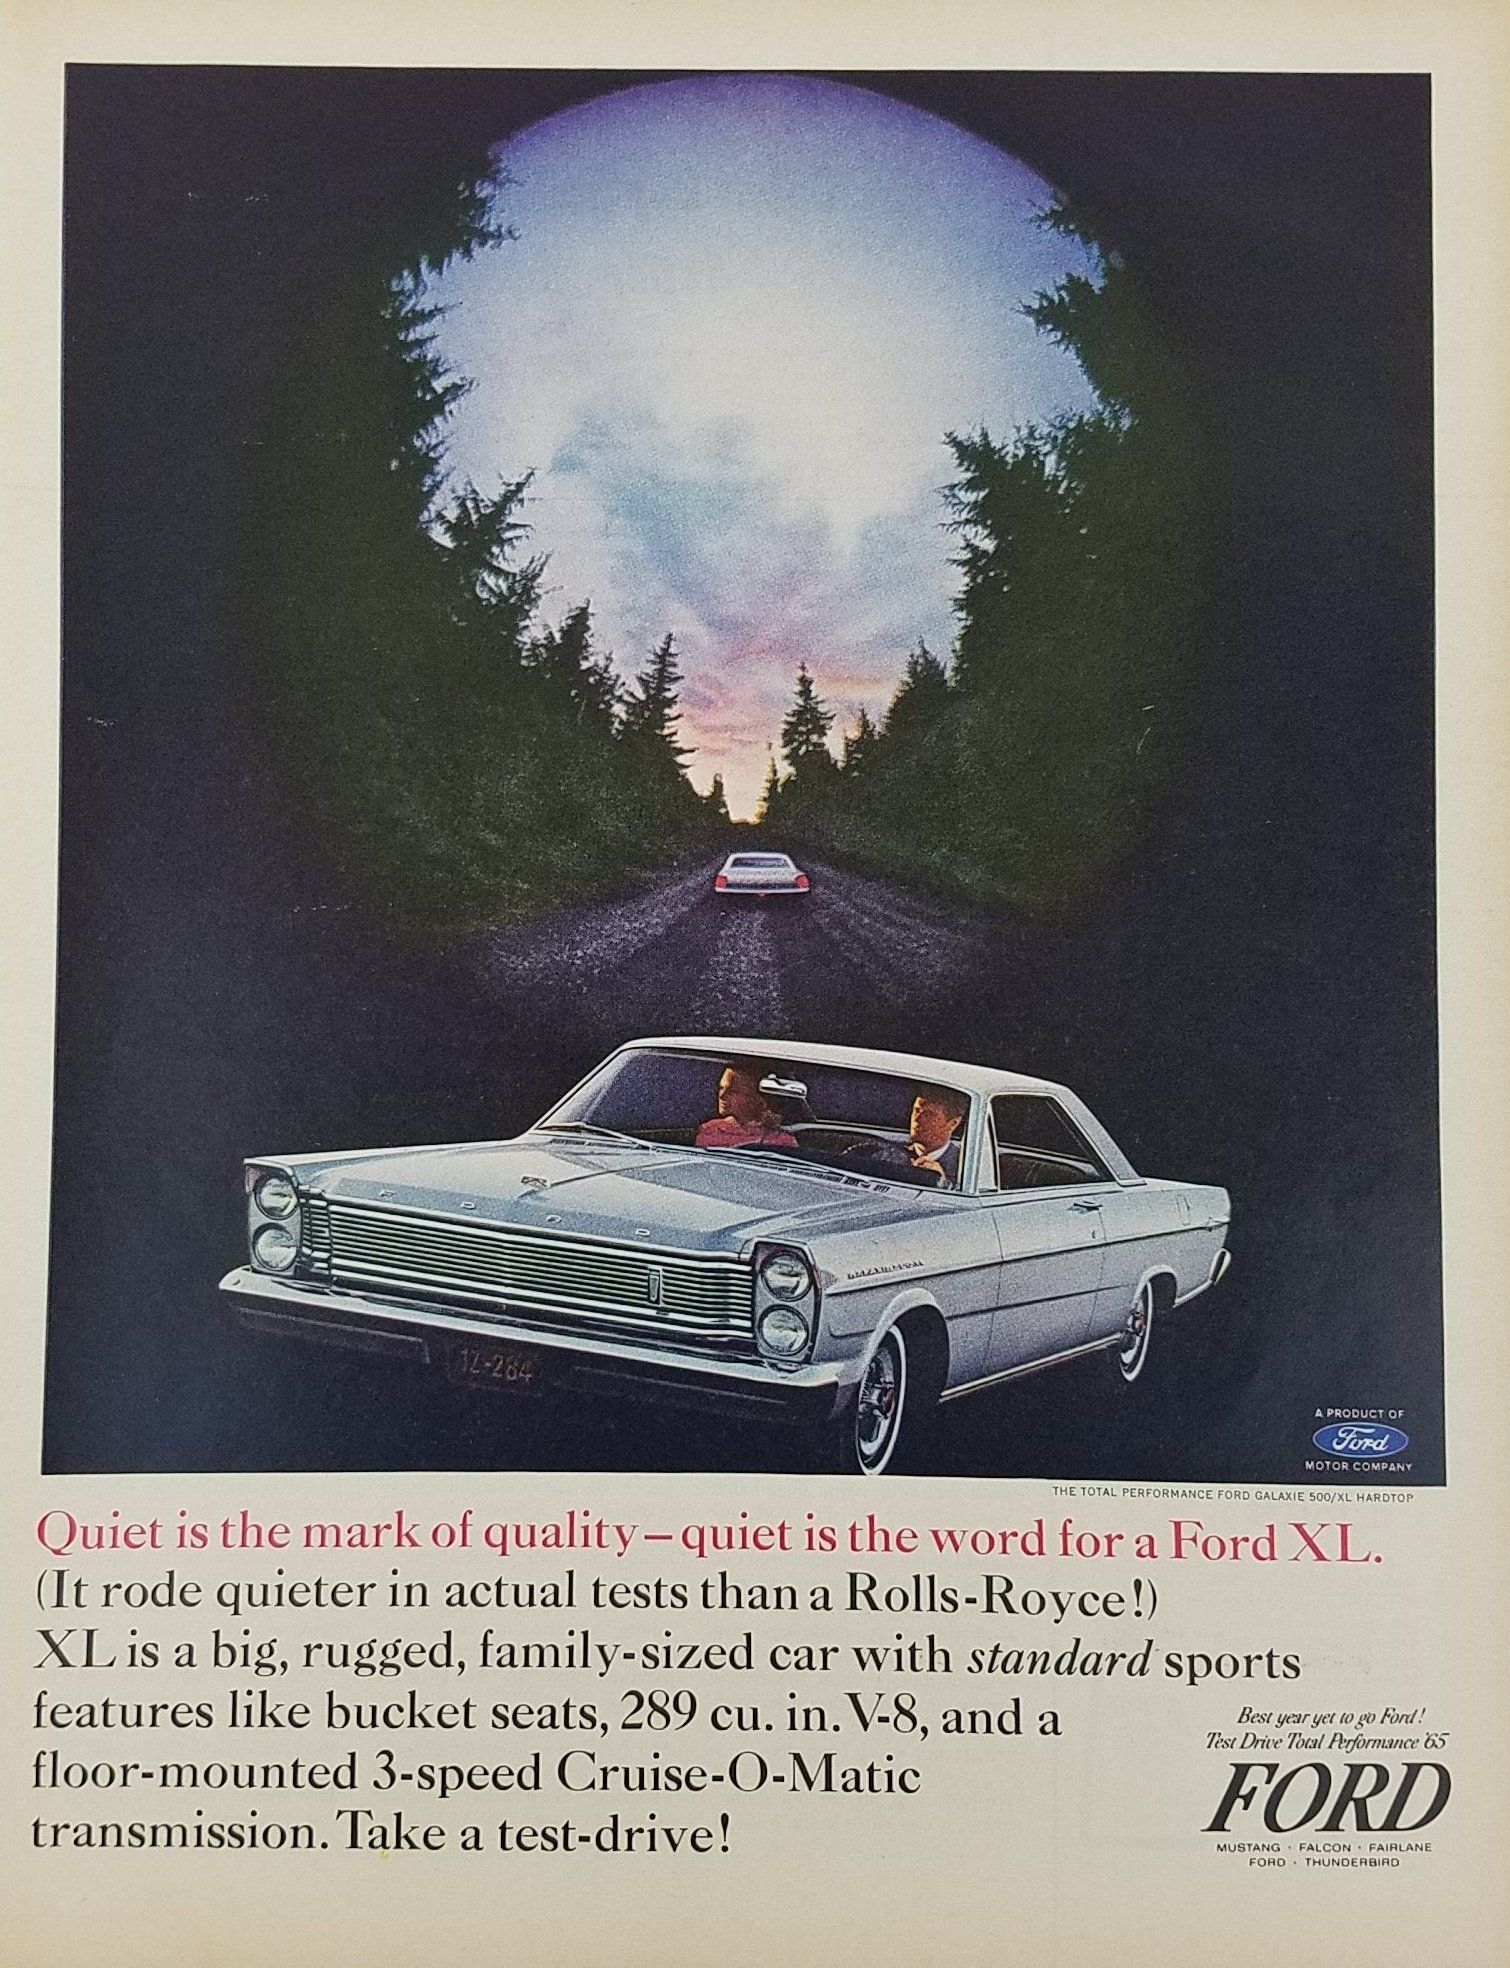 1965 Ford Galaxie 500 Xl Hardtop Vintage Ad Coches Clasicos